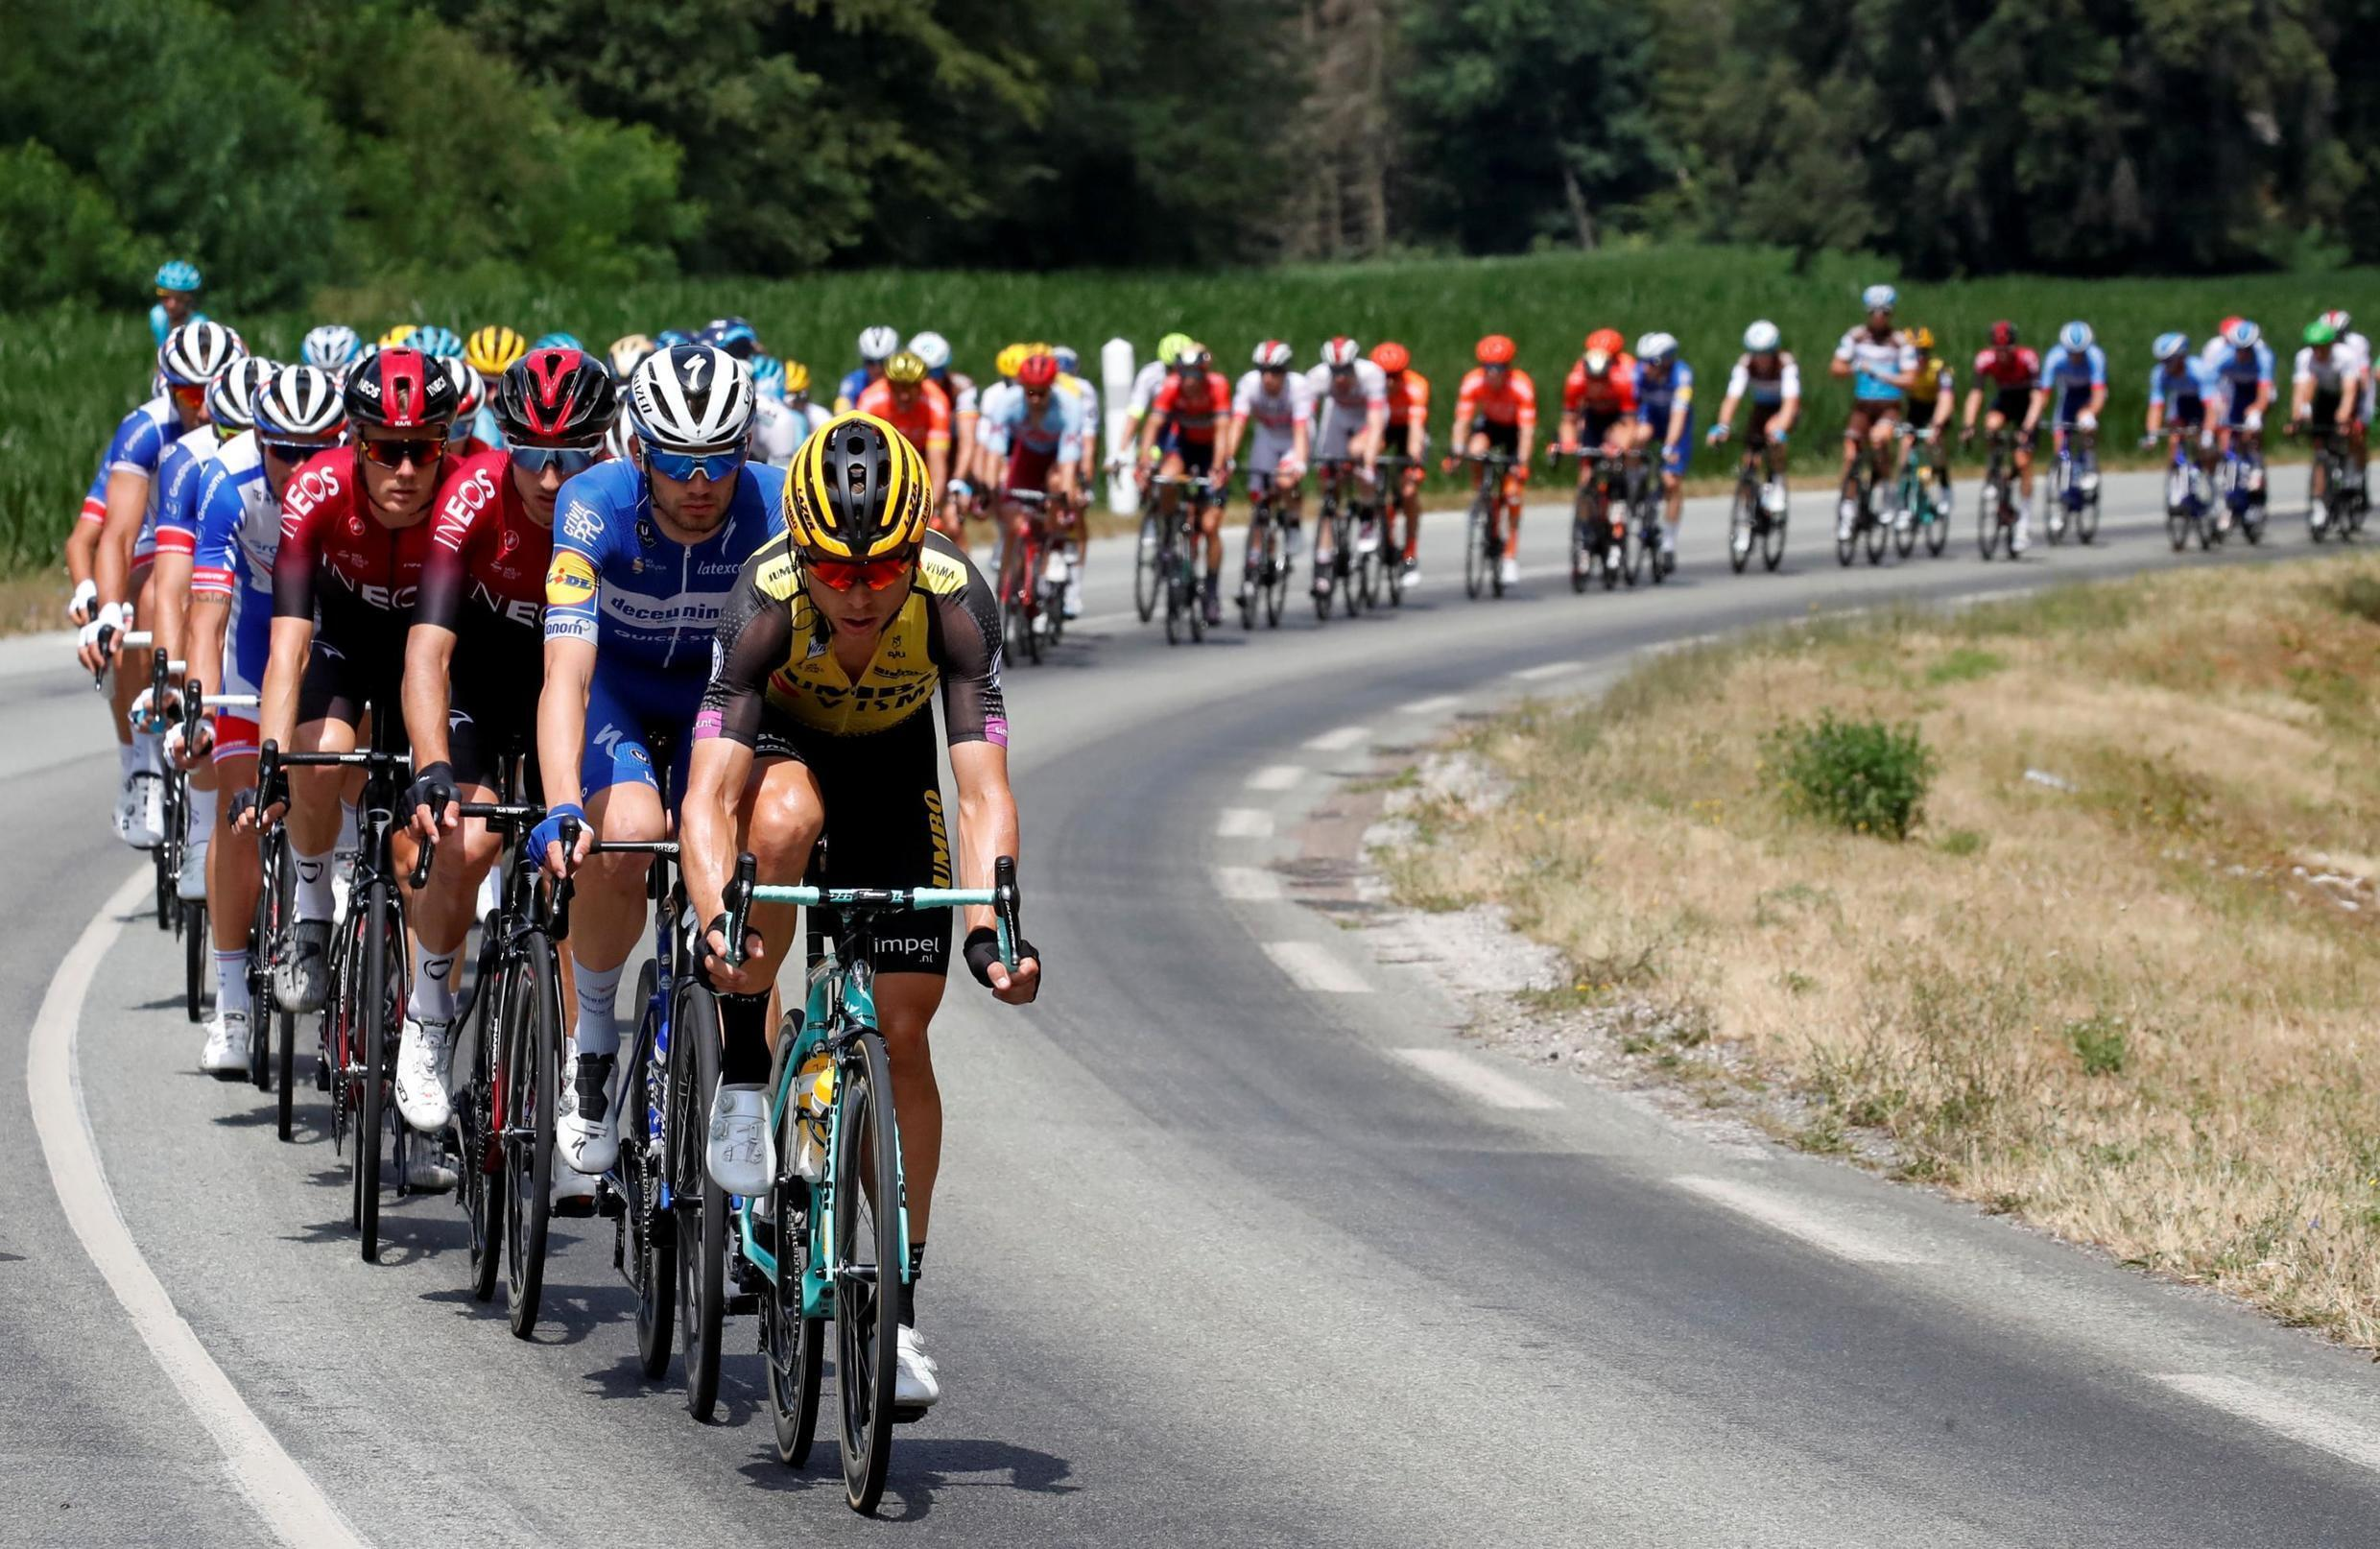 Team Jumbo-Visma rider Tony Martin of Germany leads the peloton on the 230-km stage 7 of the Tour de France from Belfort to Chalon-sur-Saone, 12 July 2019.